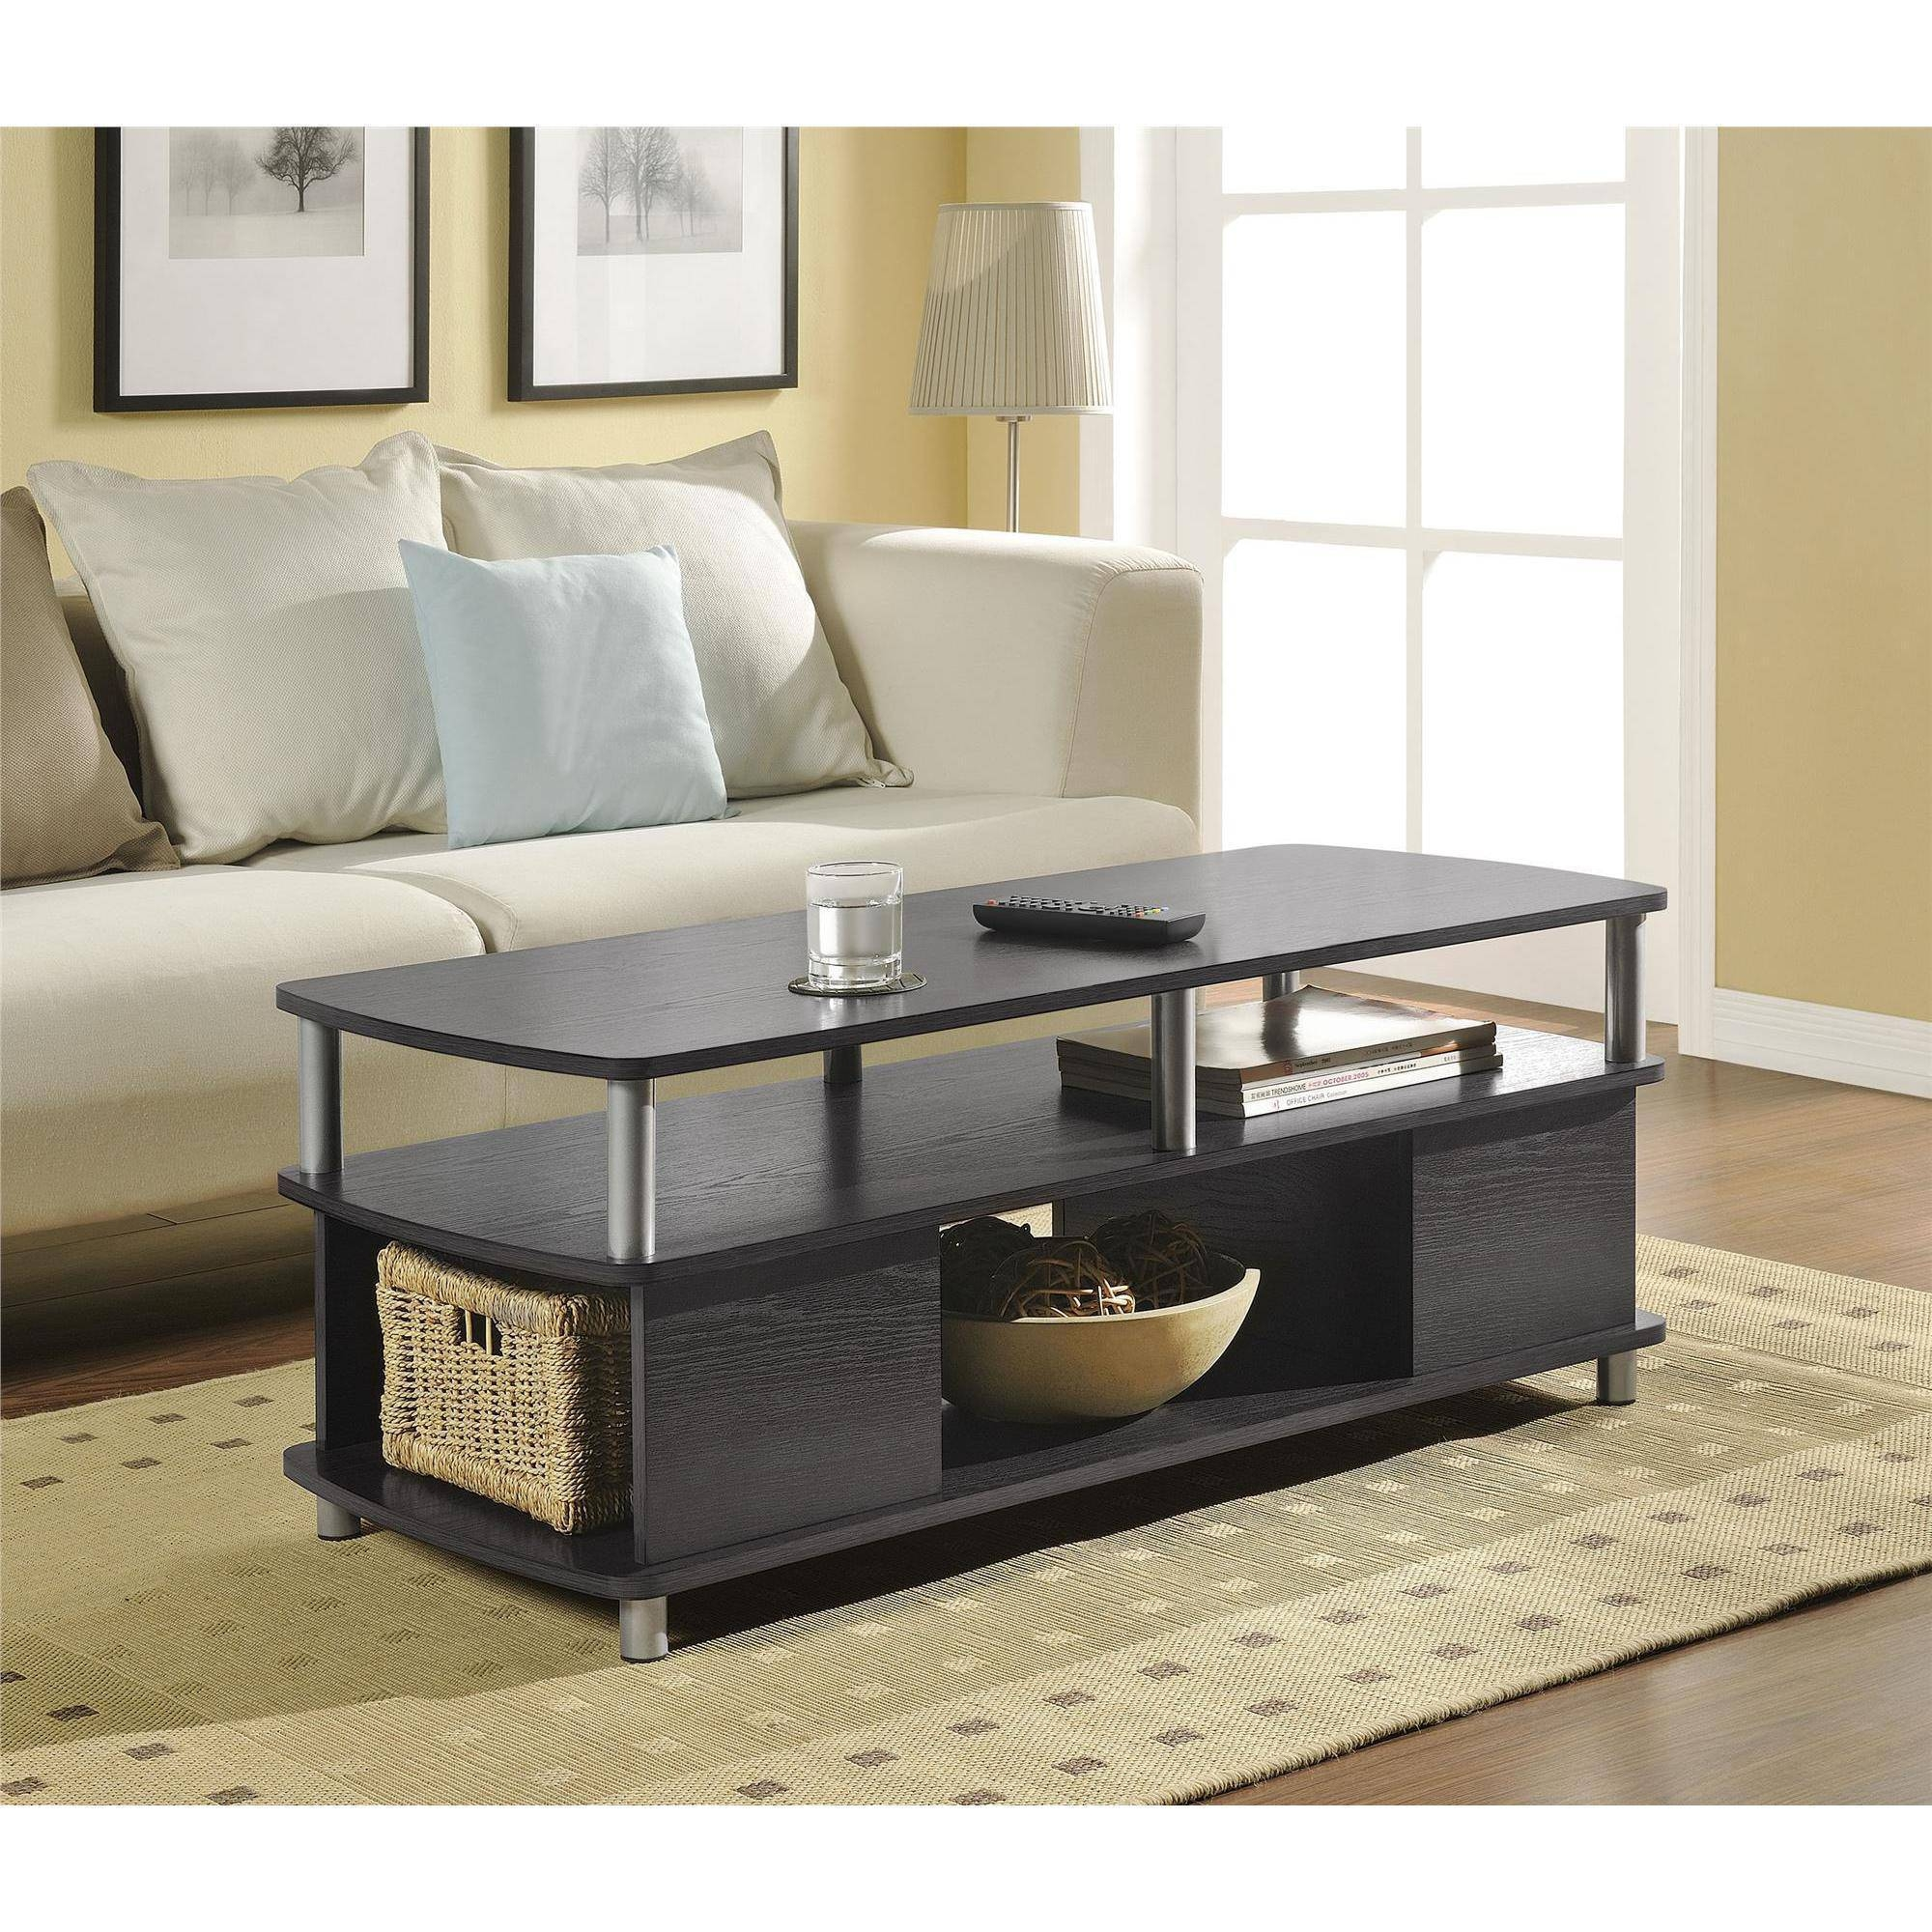 Ameriwood Home Carson Coffee Table, Espresso/silver - Walmart with Espresso Coffee Tables (Image 4 of 30)